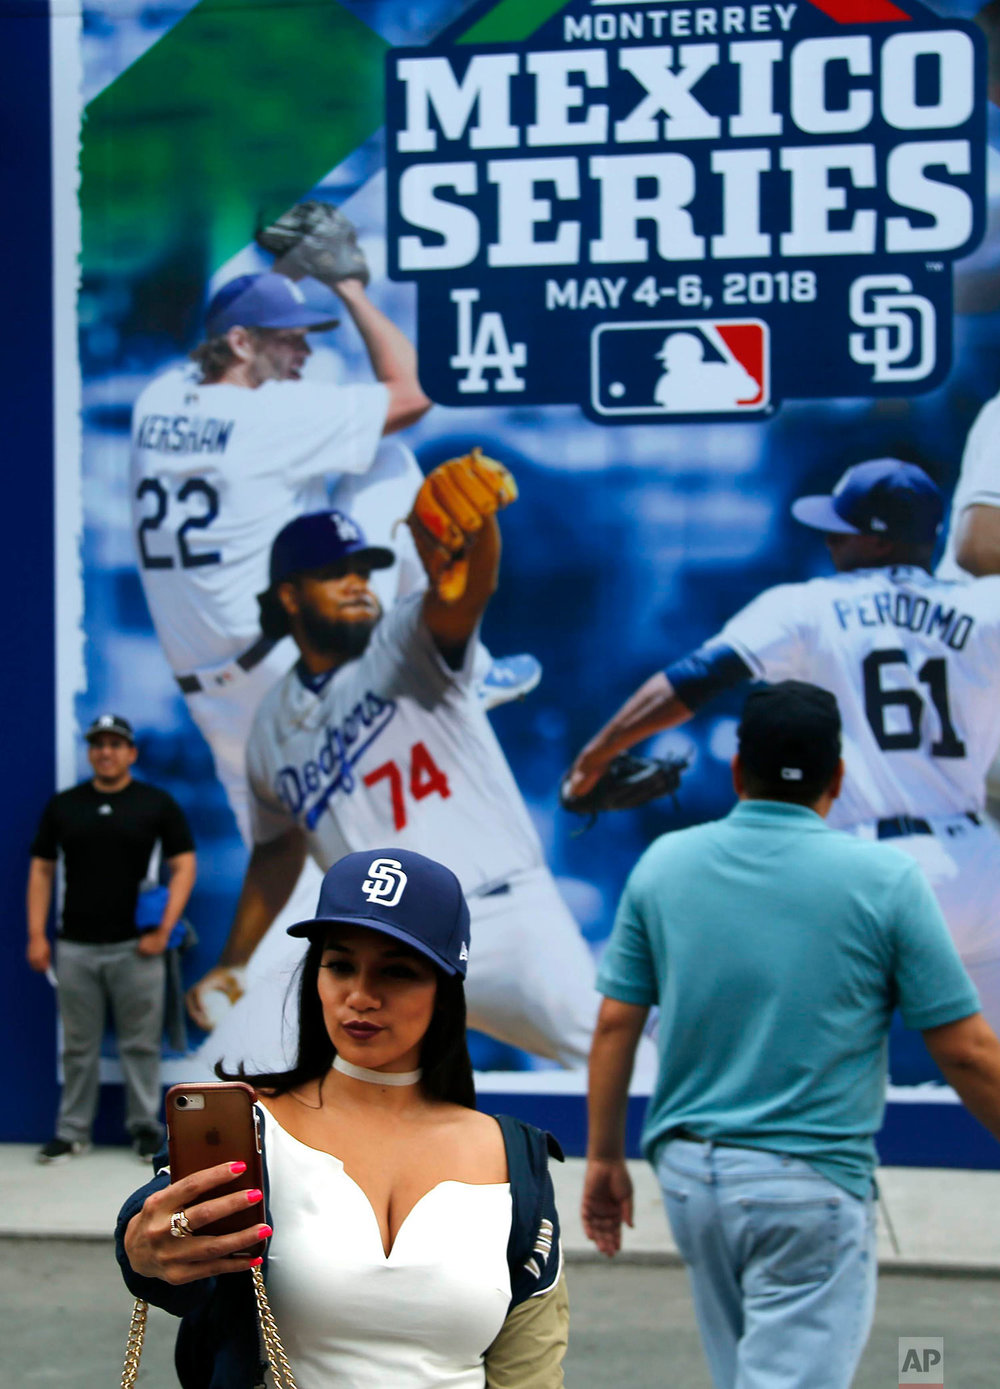 A fan takes a selfie at the stadium before a major league baseball game between the San Diego Padres and Los Angeles Dodgers in Monterrey, Mexico, Friday, May 4, 2018. (AP Photo/ Eduardo Verdugo)